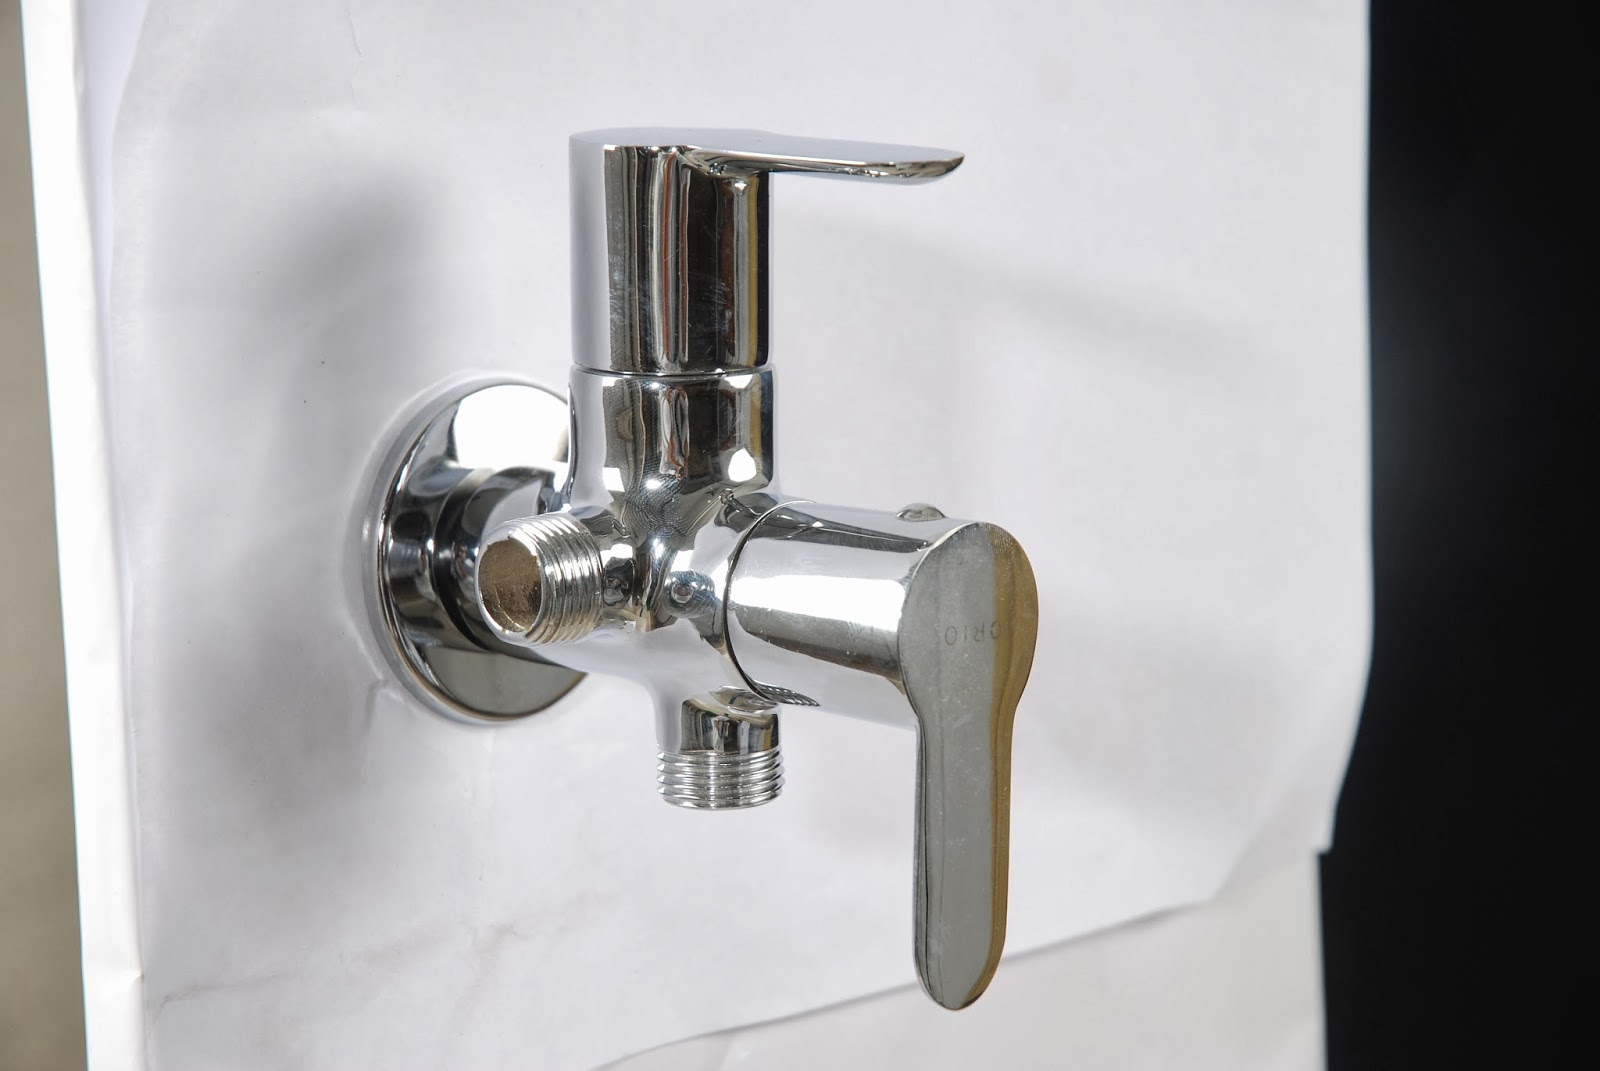 Bathroom fittings manufacturer in india manufacturer of for Bathroom fitting brands in india